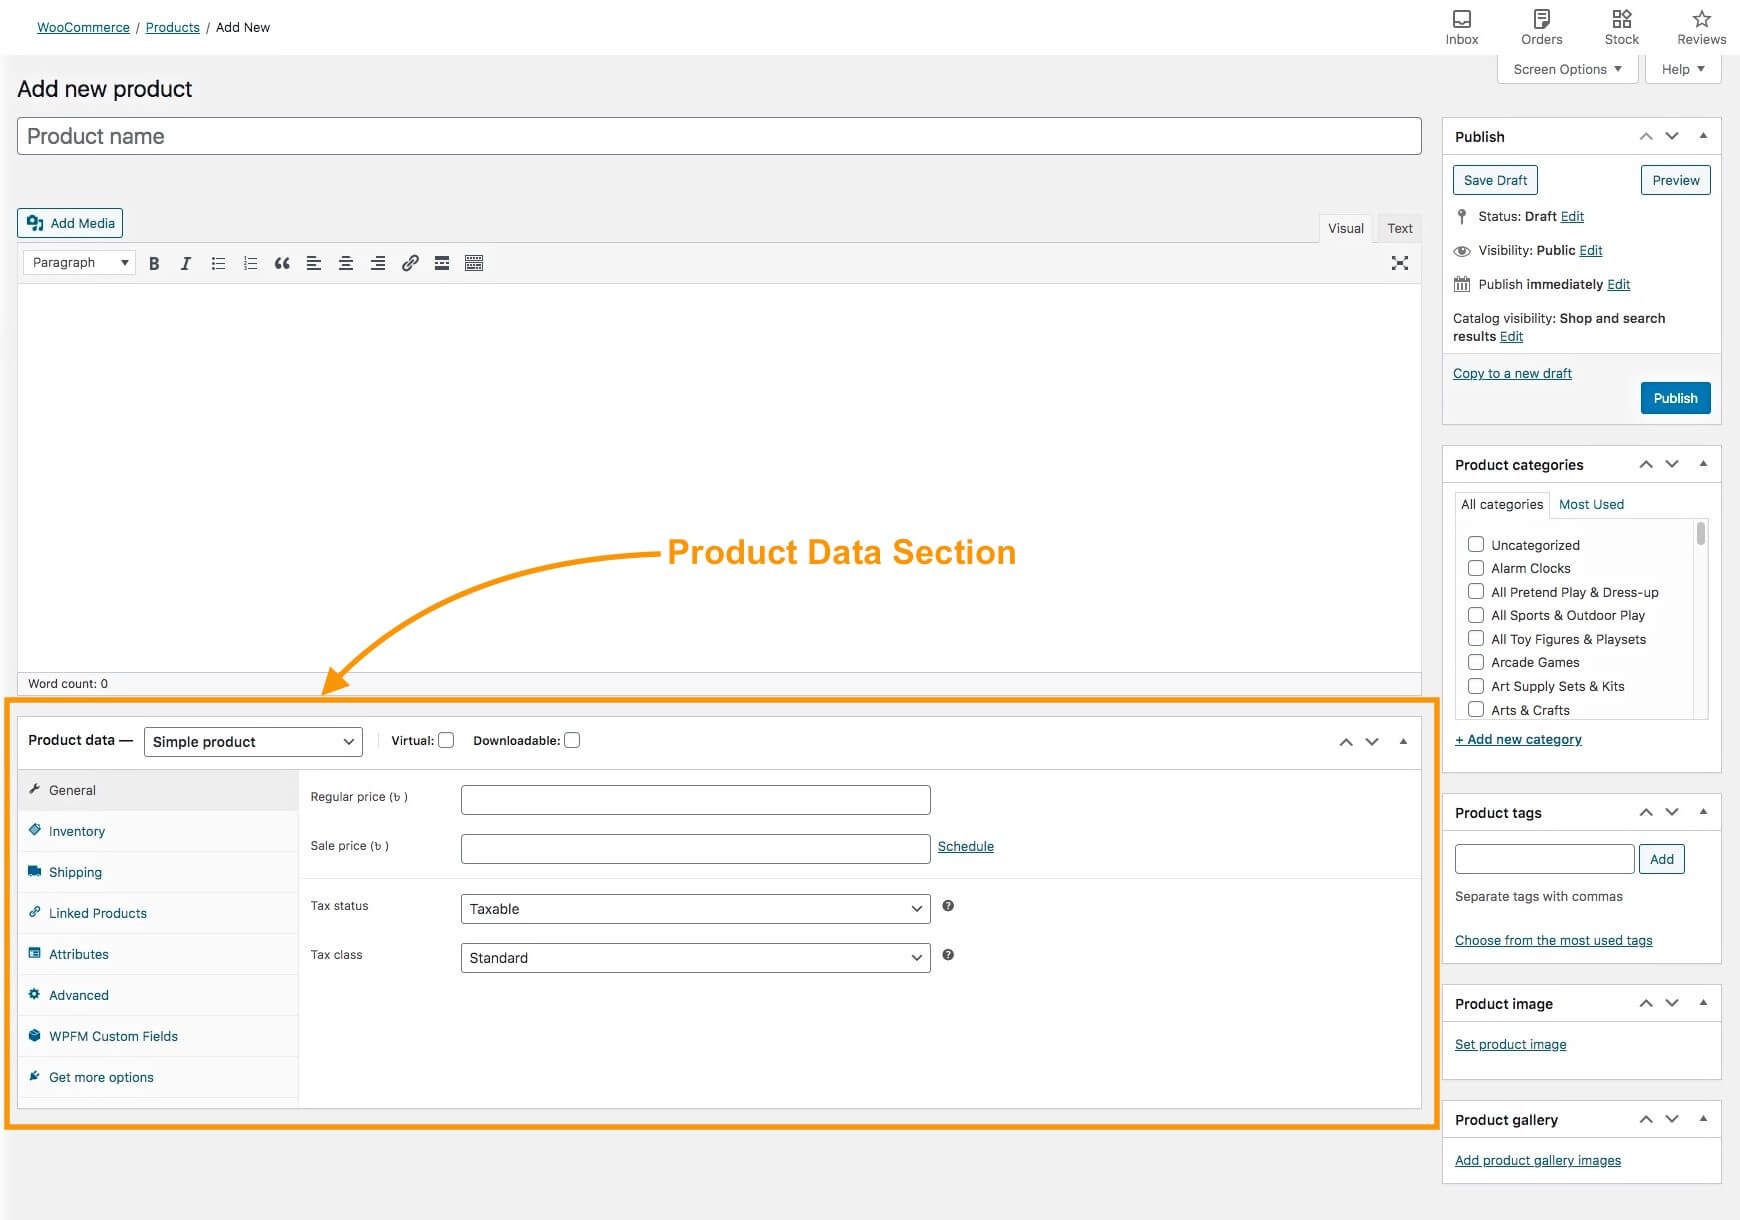 Product data section